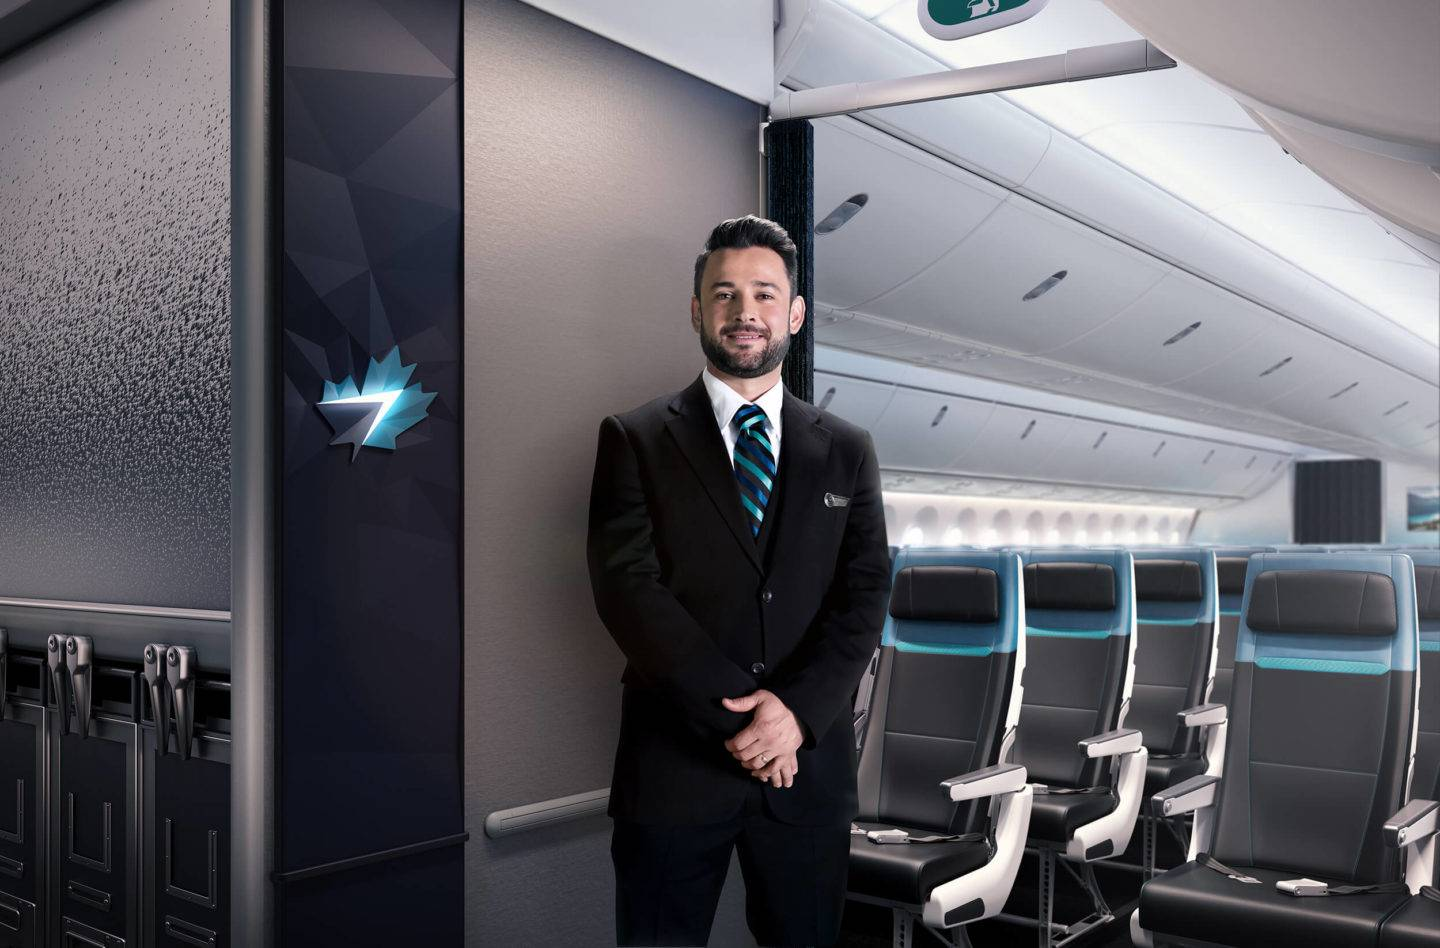 A cabin crew stands next to a brand panel with the WestJet logo at the entrance of the aircraft